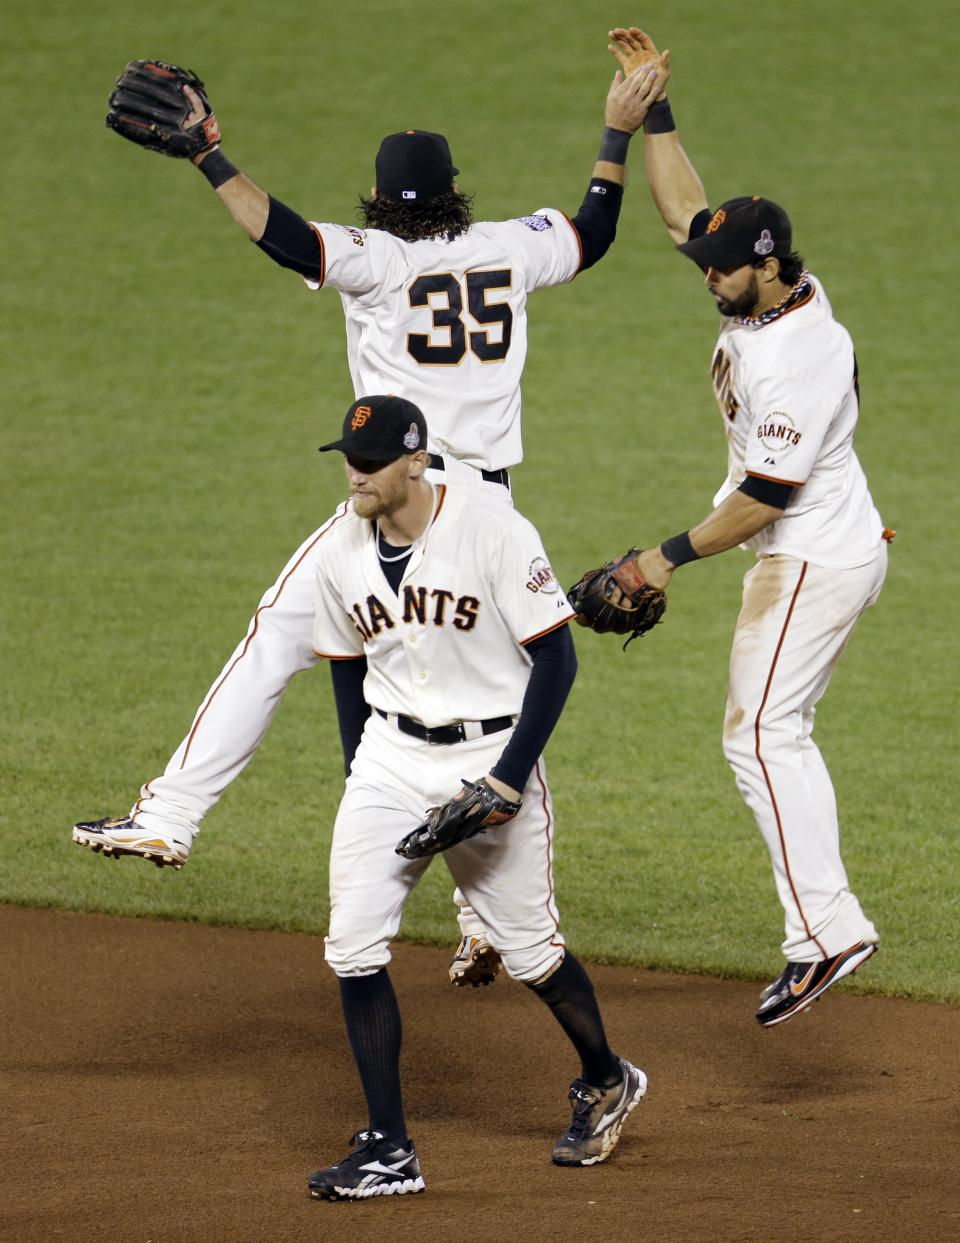 San Francisco Giants' Angel Pagan leaps up to celebrate with Brandon Crawford and Hunter Penc after the Giants beat the Detroit Tigers 2-0 in Game 2 of baseball's World Series Thursday, Oct. 25, 2012, in San Francisco. (AP Photo/Eric Risberg)